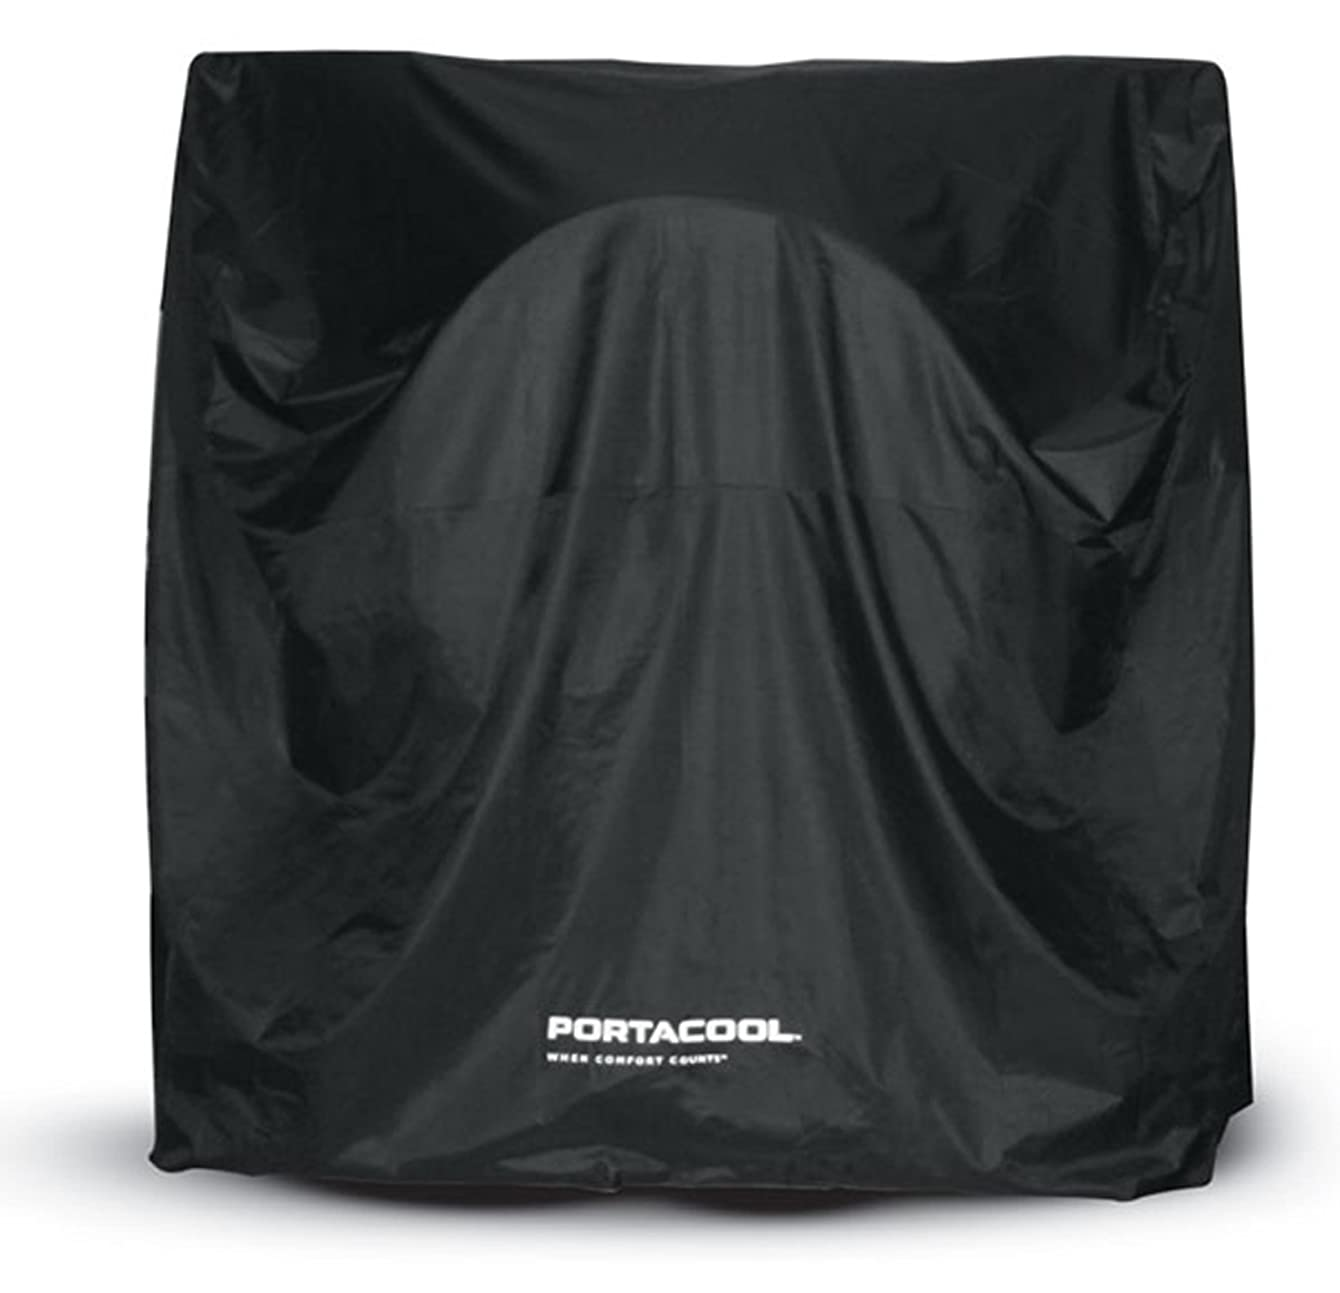 Portacool PARCVRH37000 Replacement Protective Cover for Hurricane 370 Portable Evaporative Cooler, Black